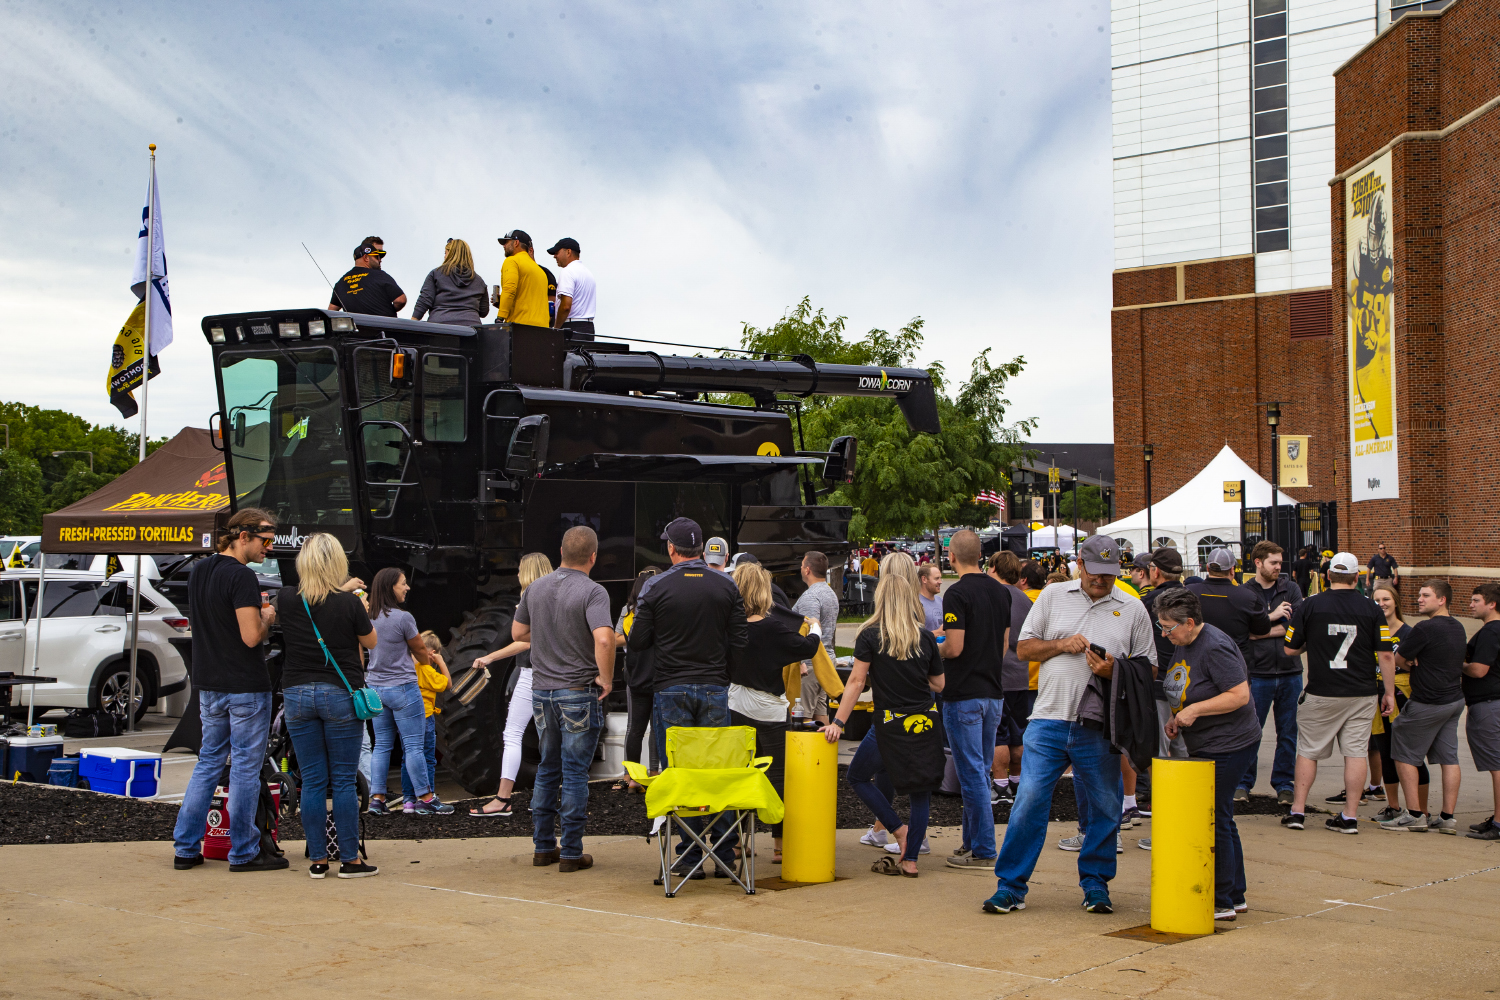 Photos: Iowa vs  Miami (OH) Tailgate (8/31/2019) – The Daily